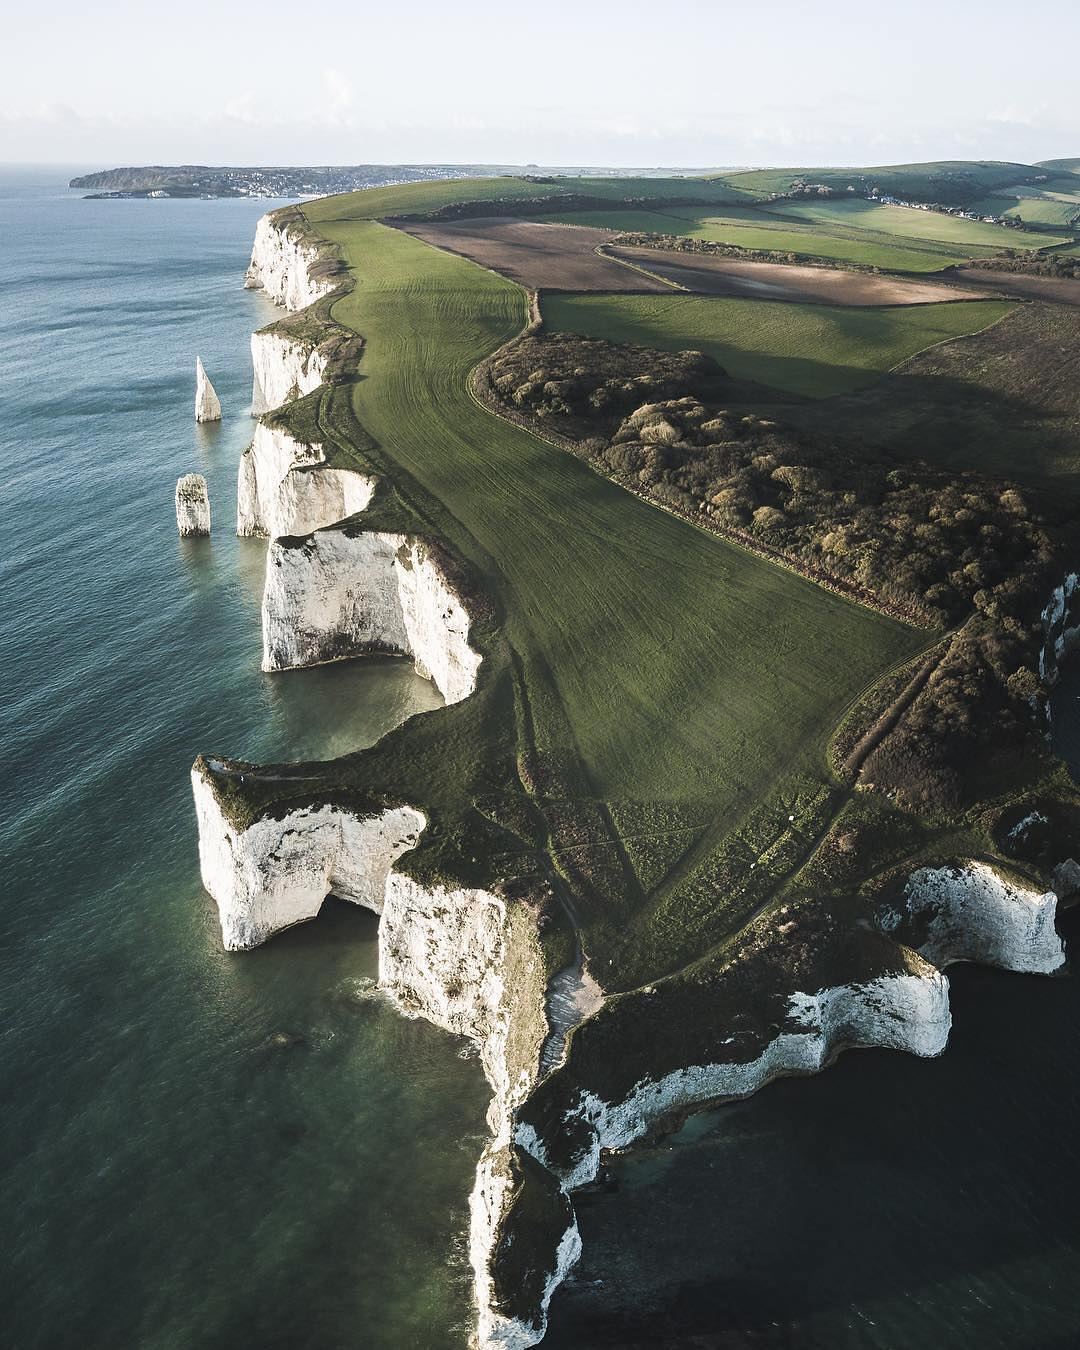 """Check out this week's """"Drone Sunday"""" post from From Where I Drone, which gives us an amazing view of Old Harry Rocks, a unique formation of chalk cliffs on the Isle of Purbeck in Dorset, southern England. These rocks were formed approximately 66 million years ago, and have been gradually eroded over centuries, leaving behind standalone columns in some places. Be sure to follow From Where I Drone for more incredible drone photos!  50°38'32.3""""N, 1°55'25.0""""W  Source imagery: Paul Watson Photography"""